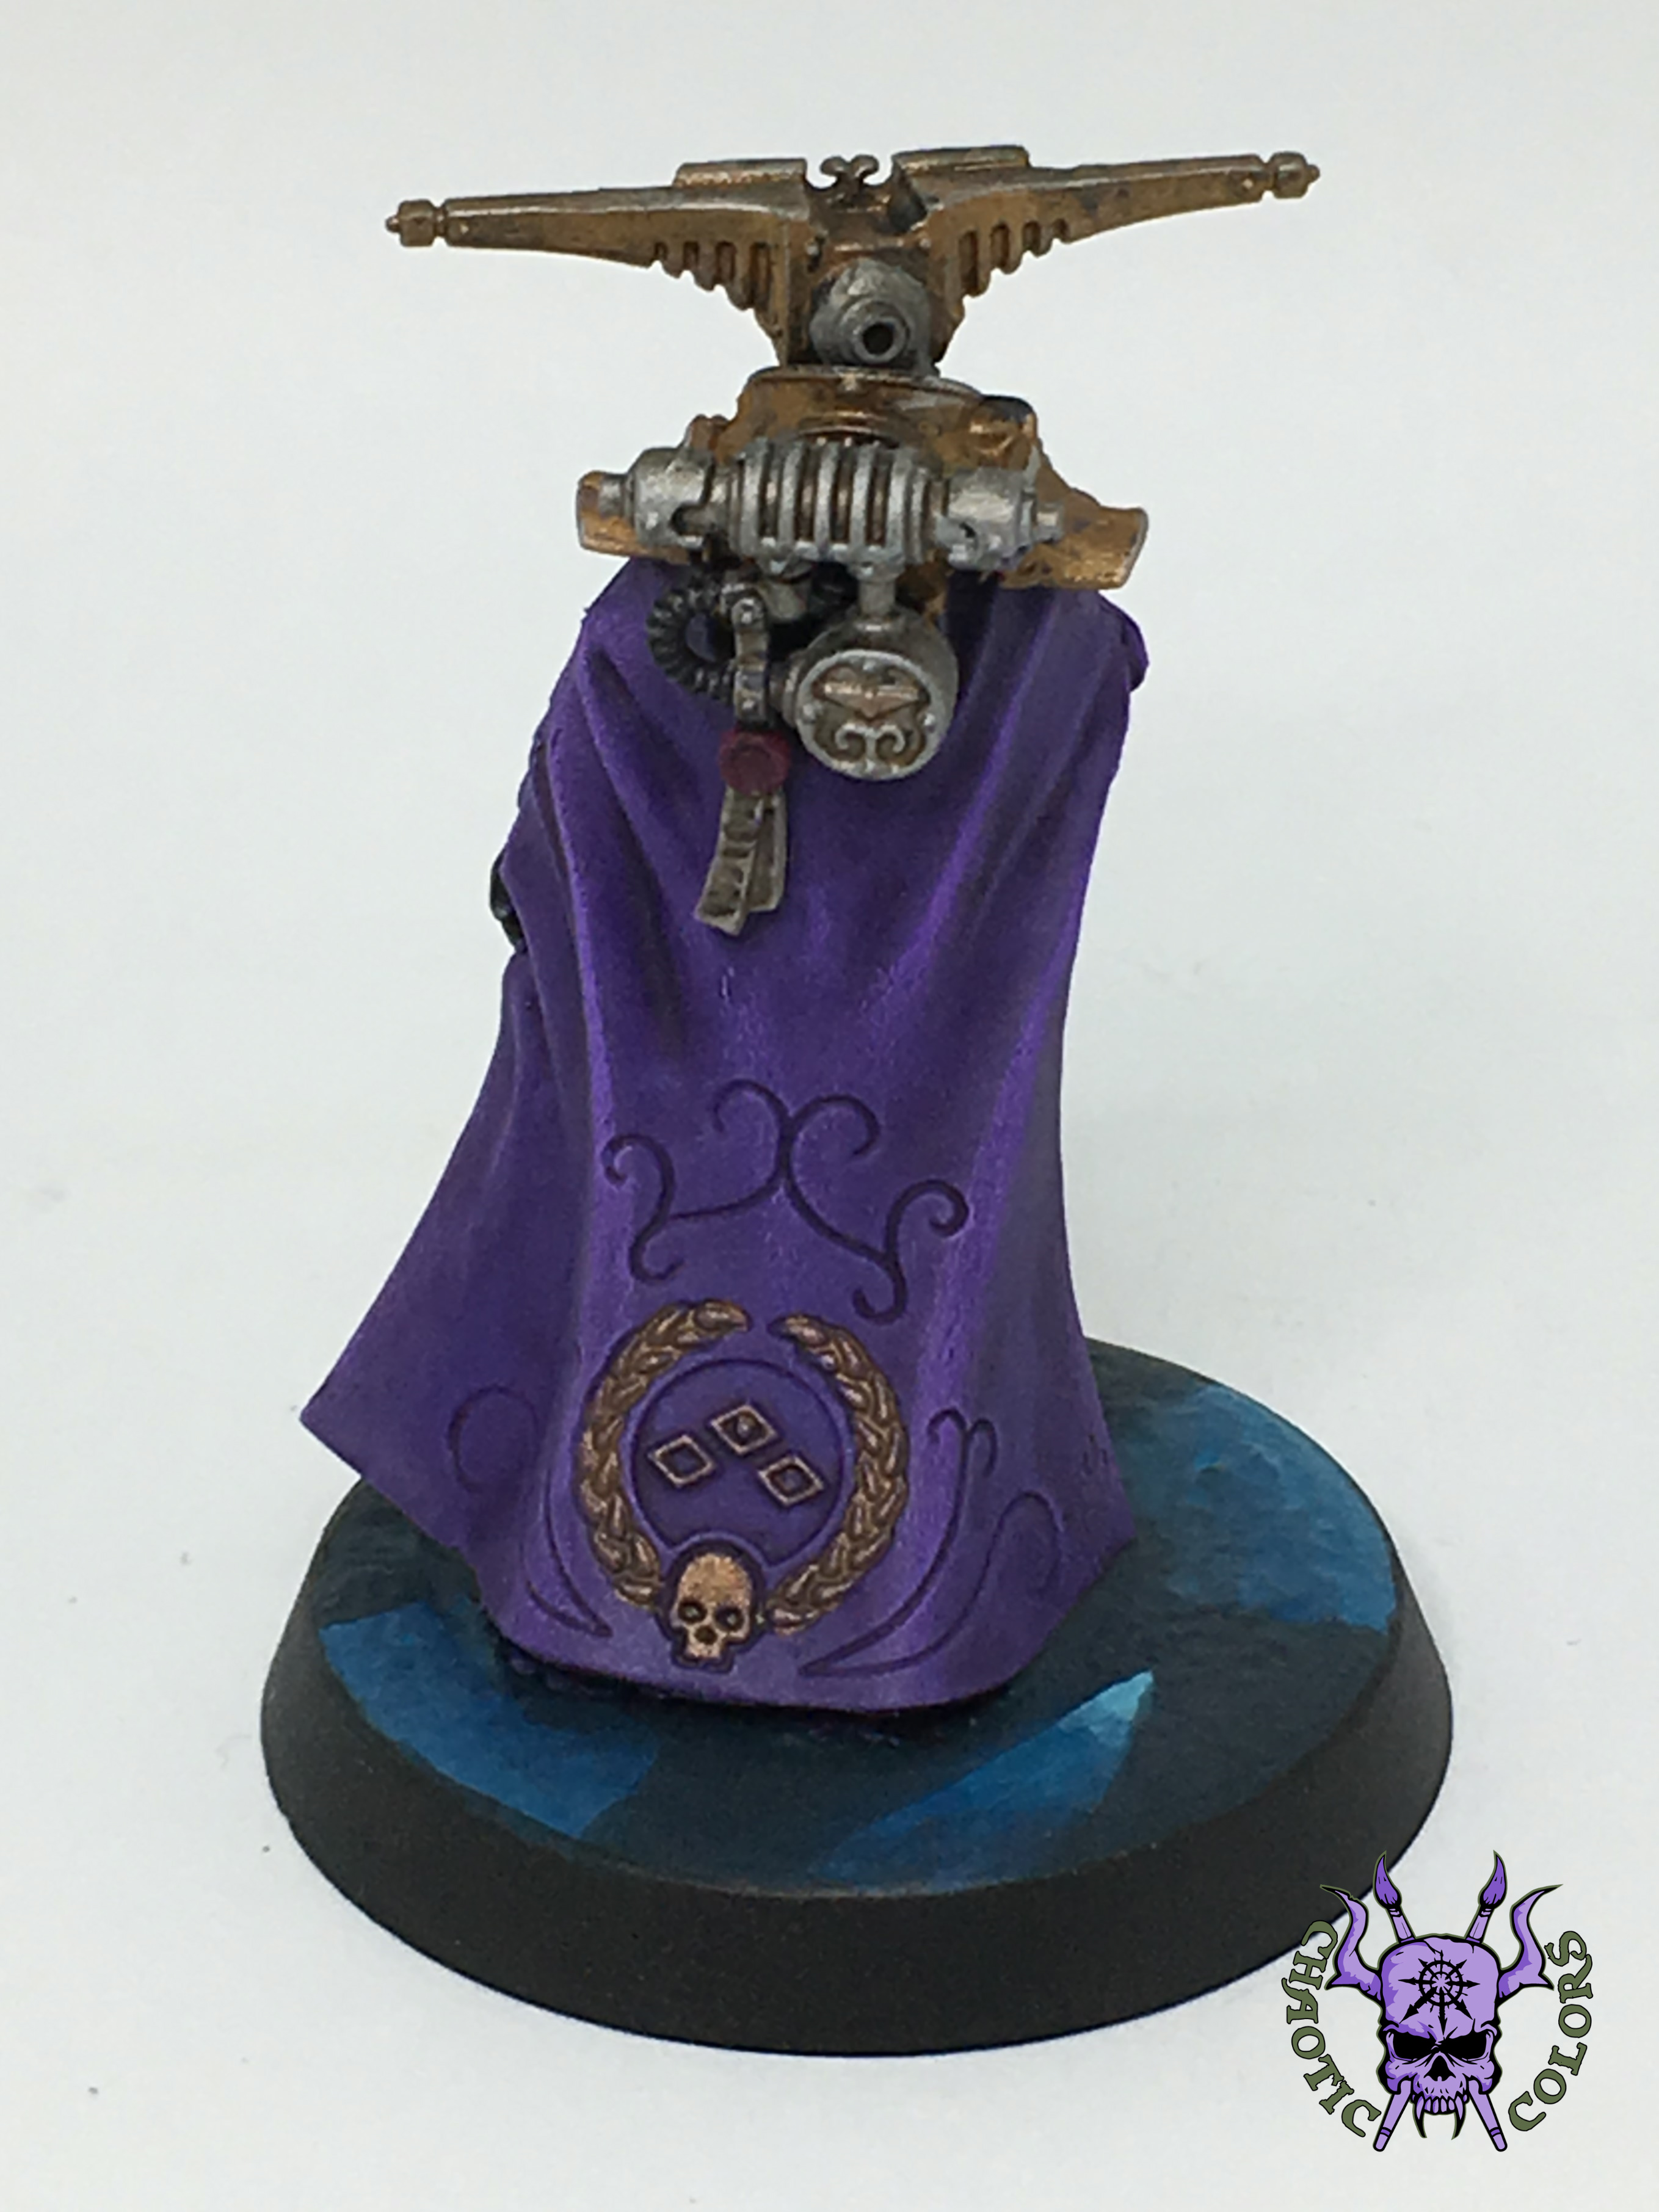 warhammer quest blackstone fortress espern locarno imperial navigator chaotic colors espern locarno imperial navigator